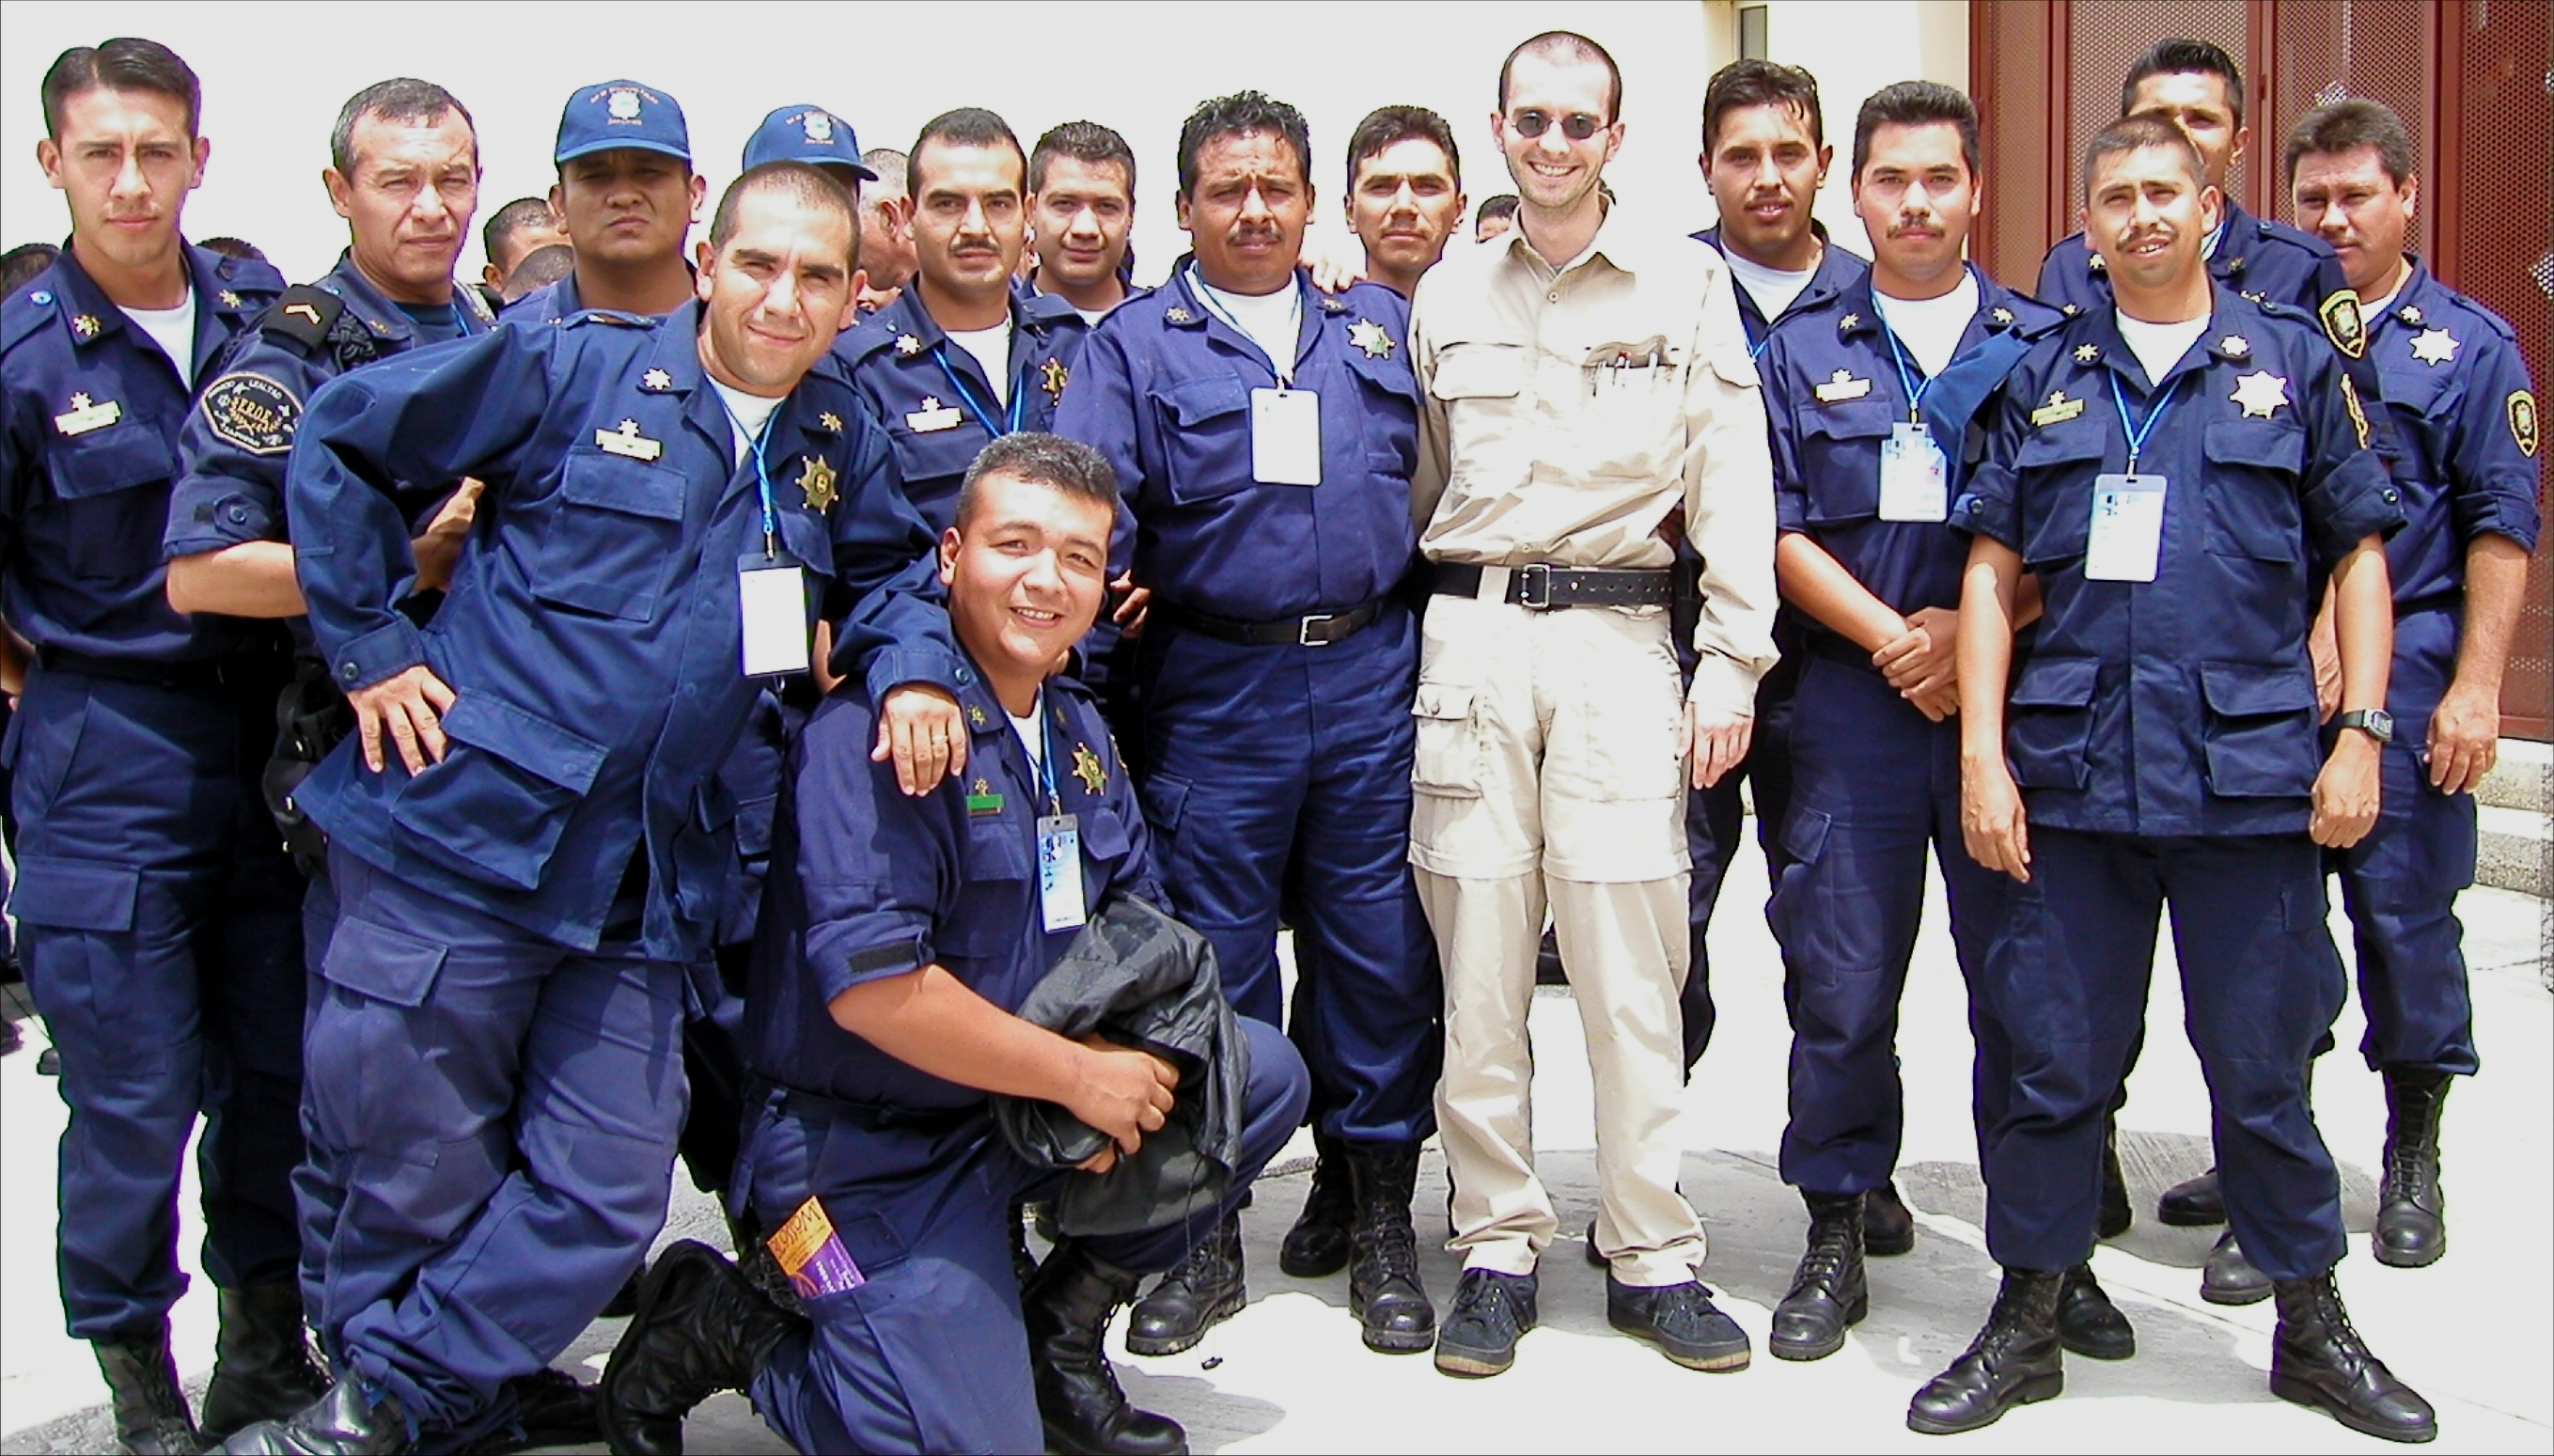 qu_l_mark_benecke_with_mexian_police